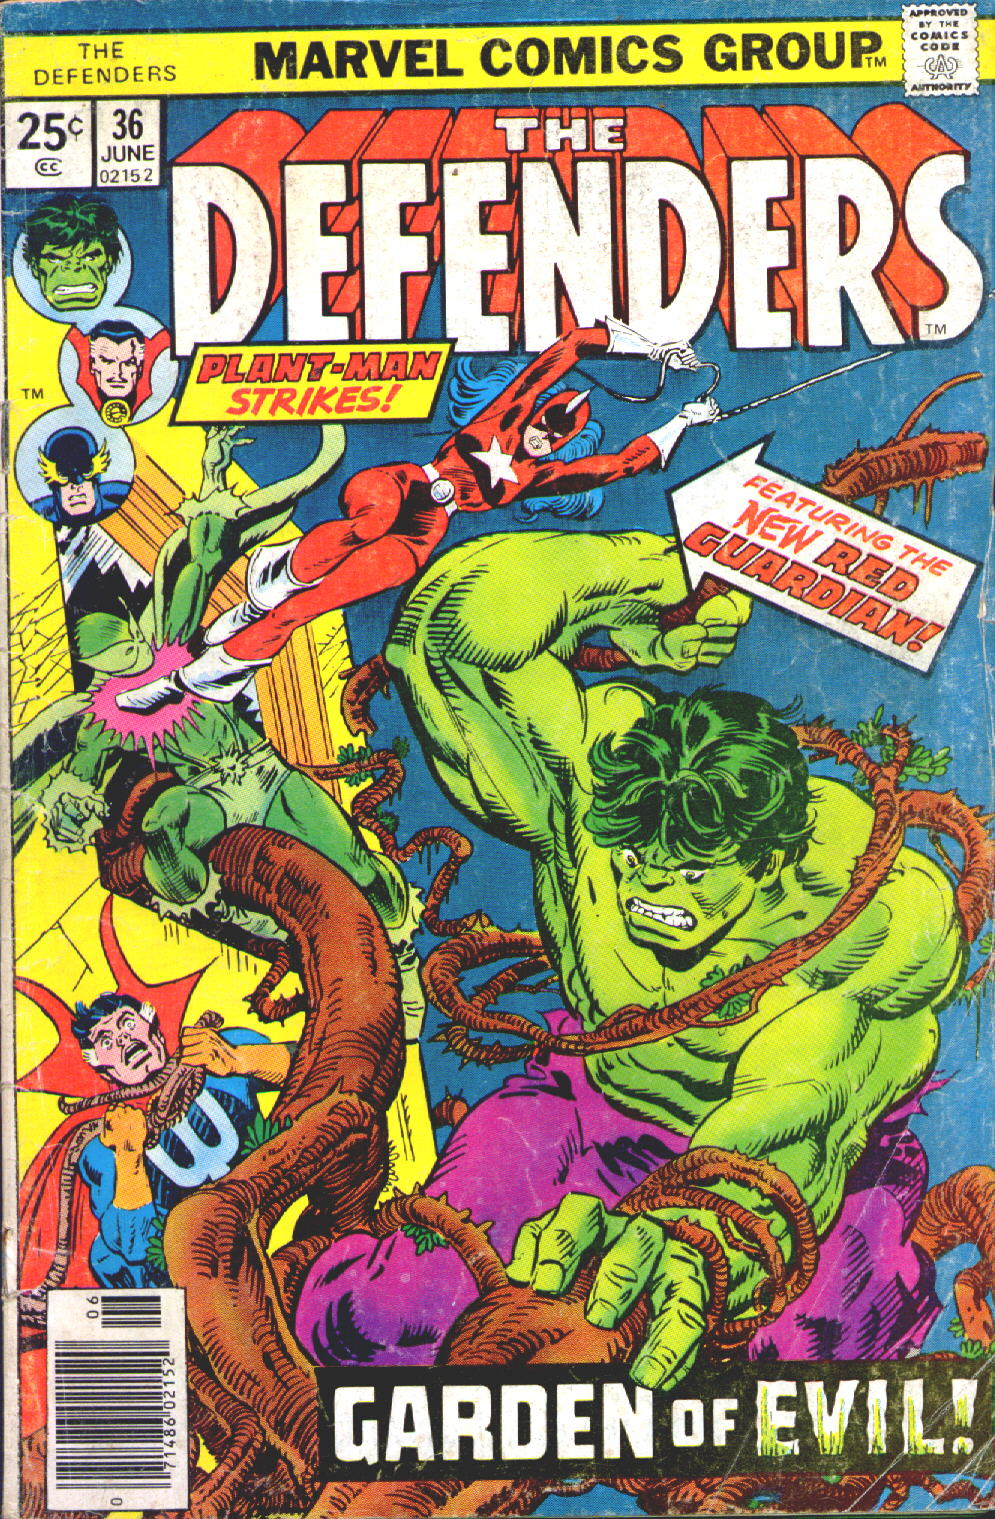 The Defenders (1972) 36 Page 1